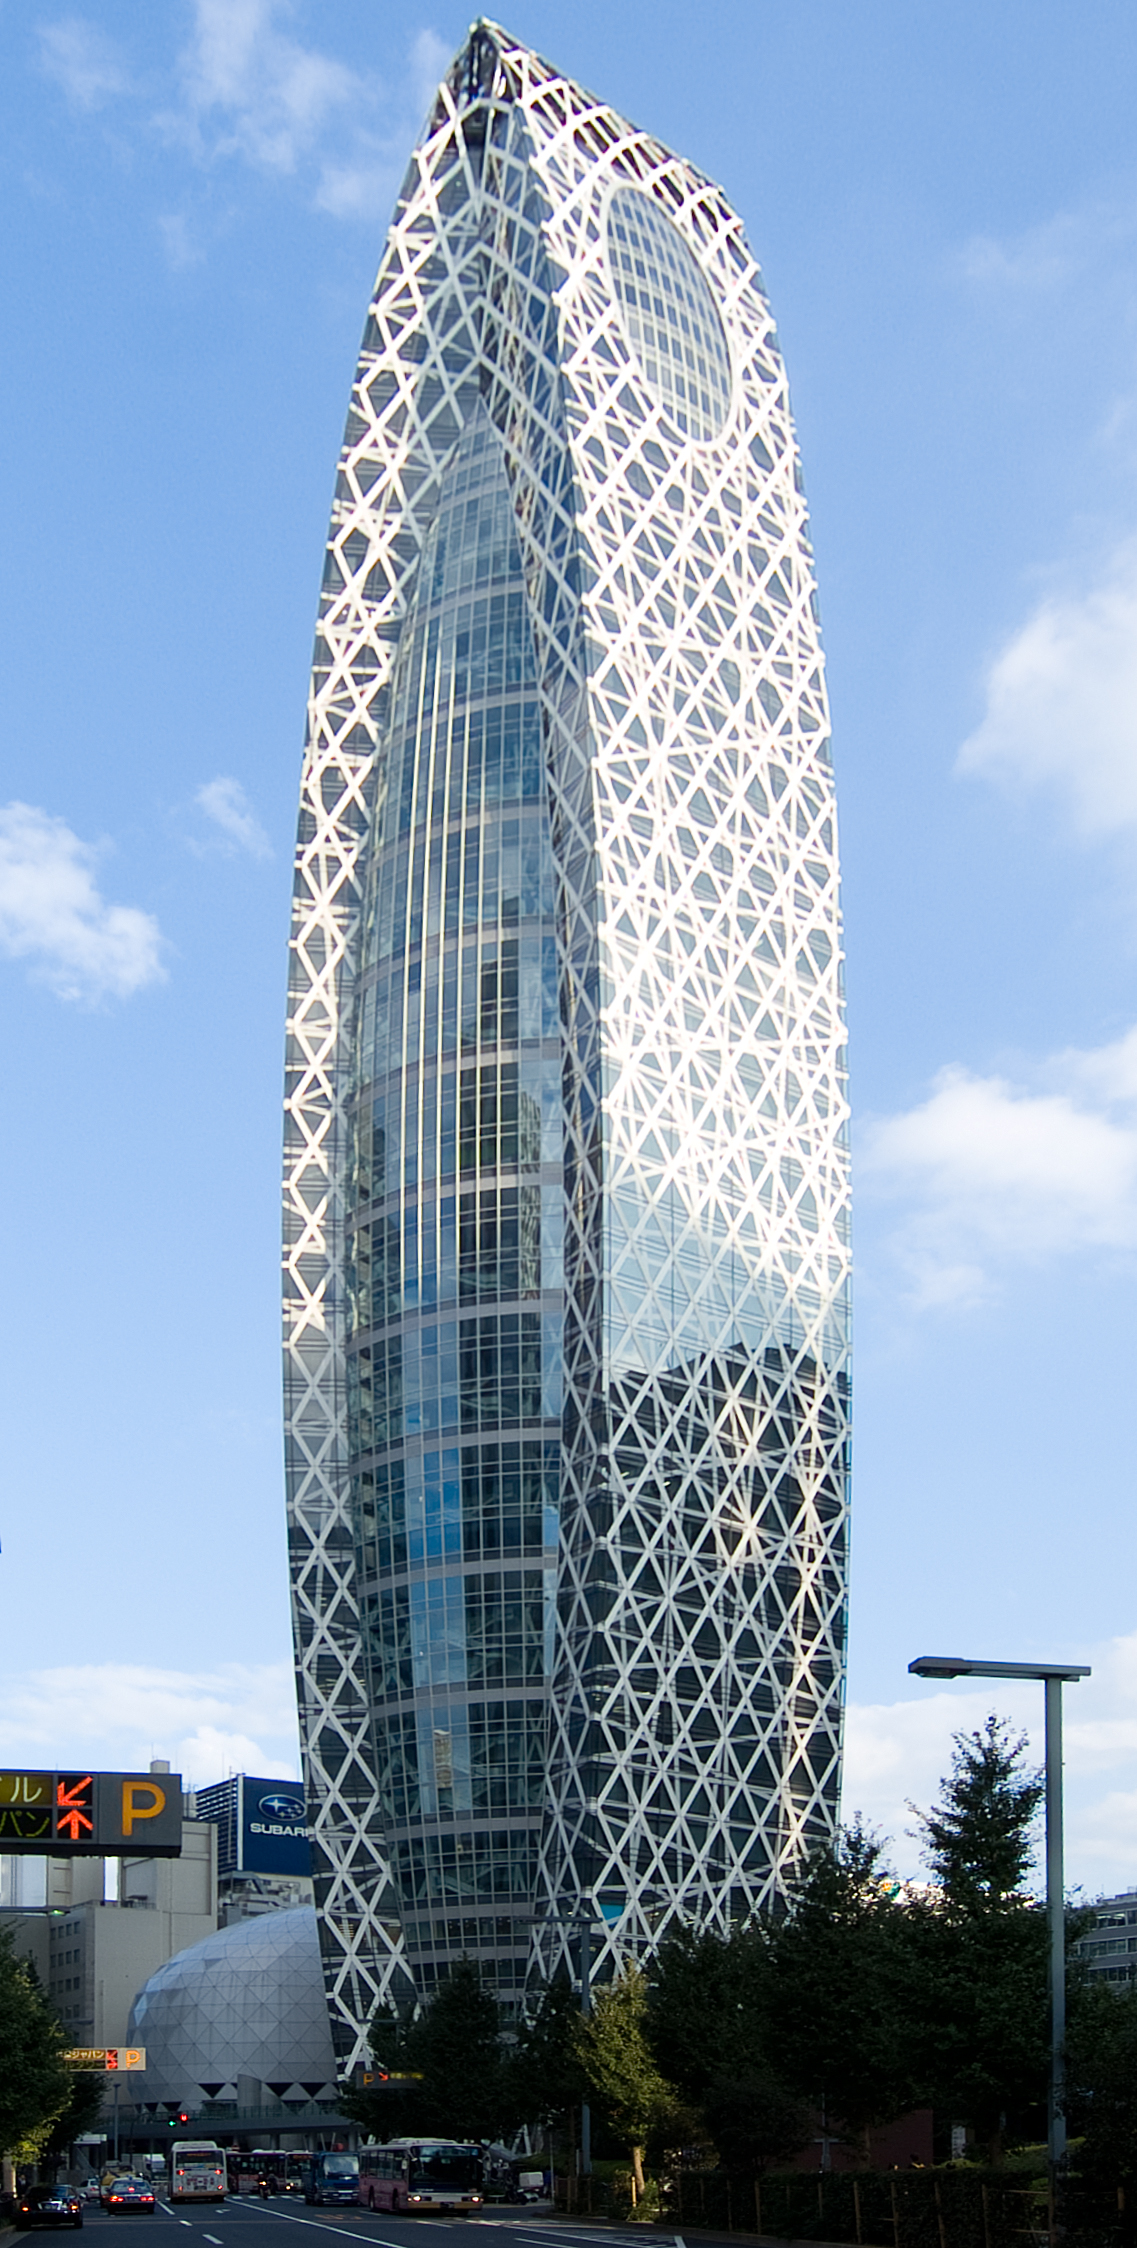 Mode gakuen cocoon tower wikipedia for Architecture tokyo